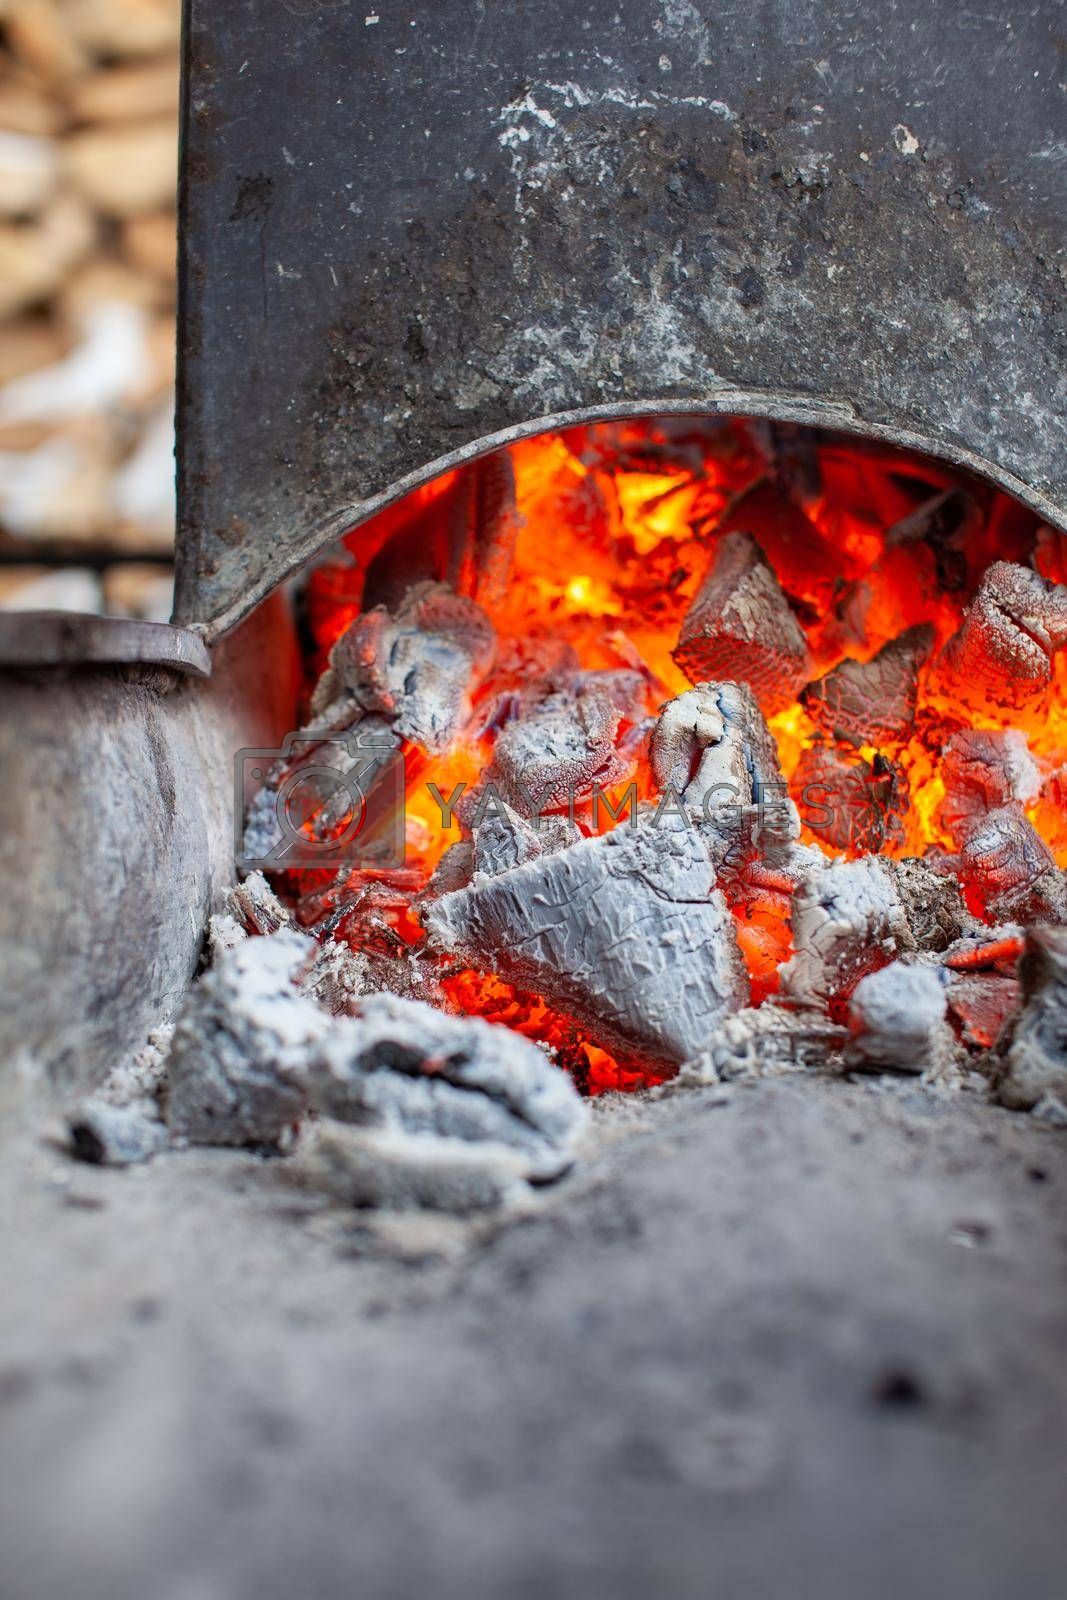 Burning coals in a metal grill for frying meat and vegetables. Cooking on a campfire.